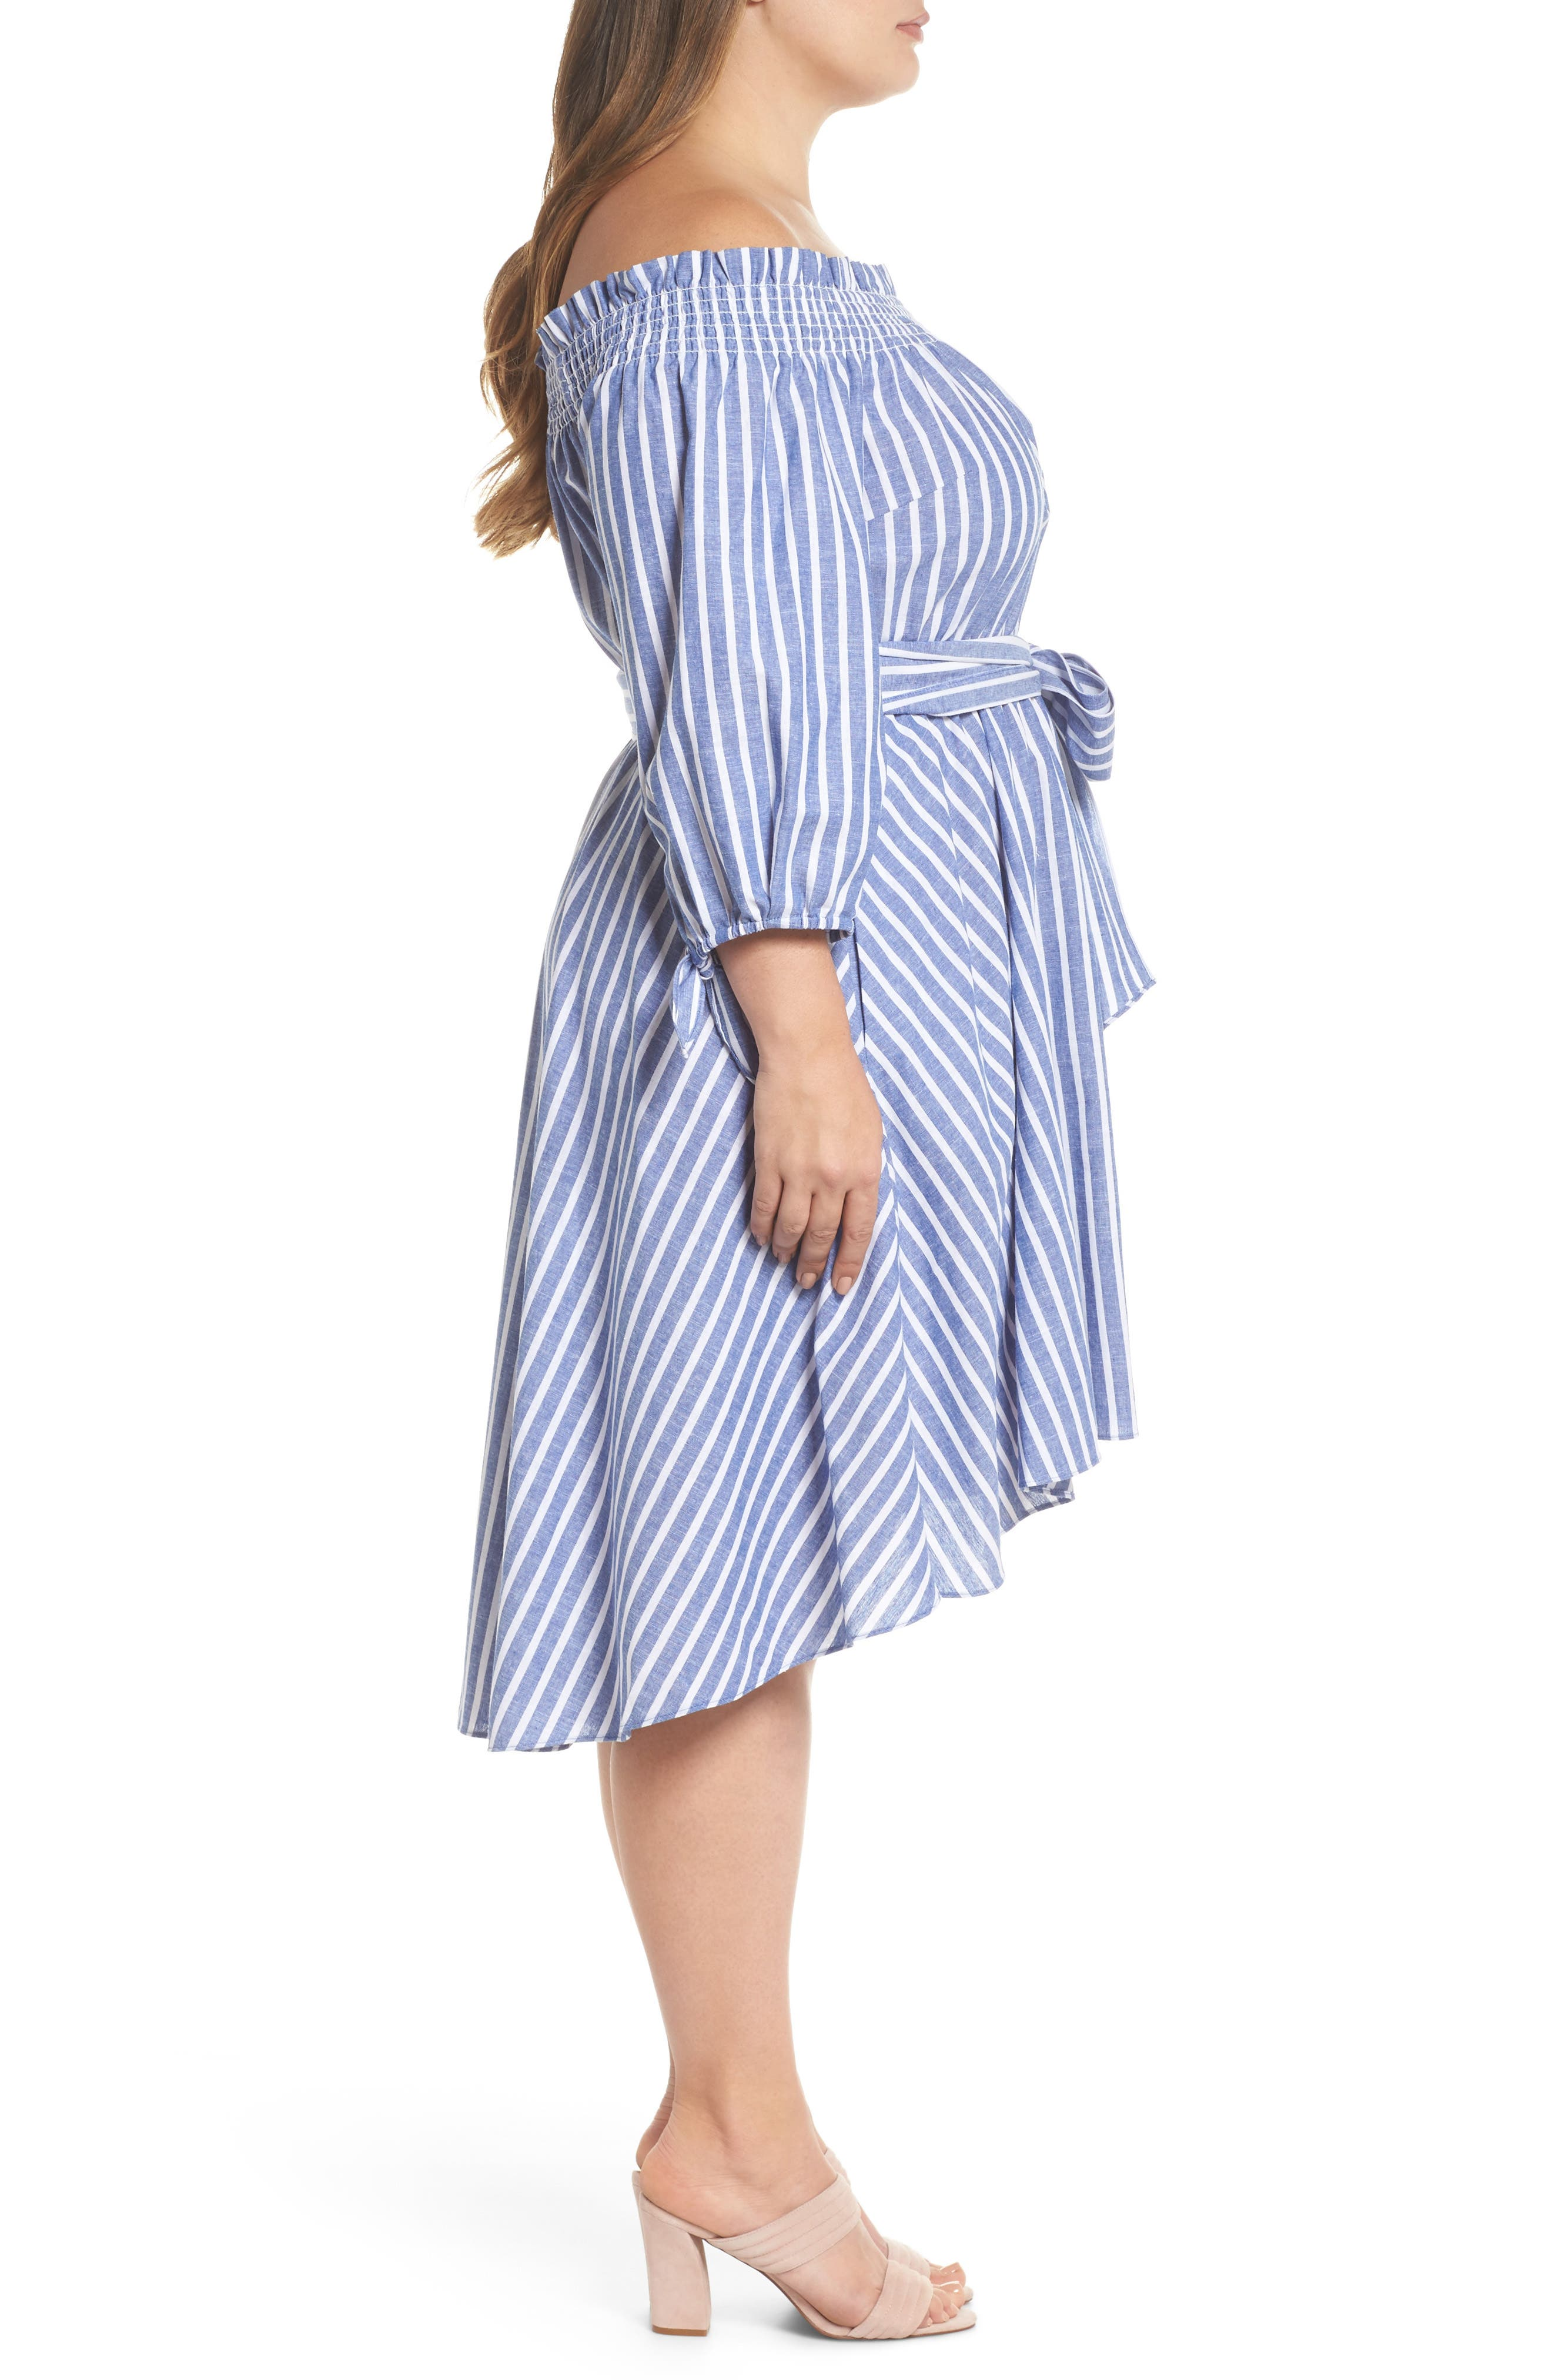 Off the Shoulder Dress,                             Alternate thumbnail 3, color,                             Navy/ Ivory